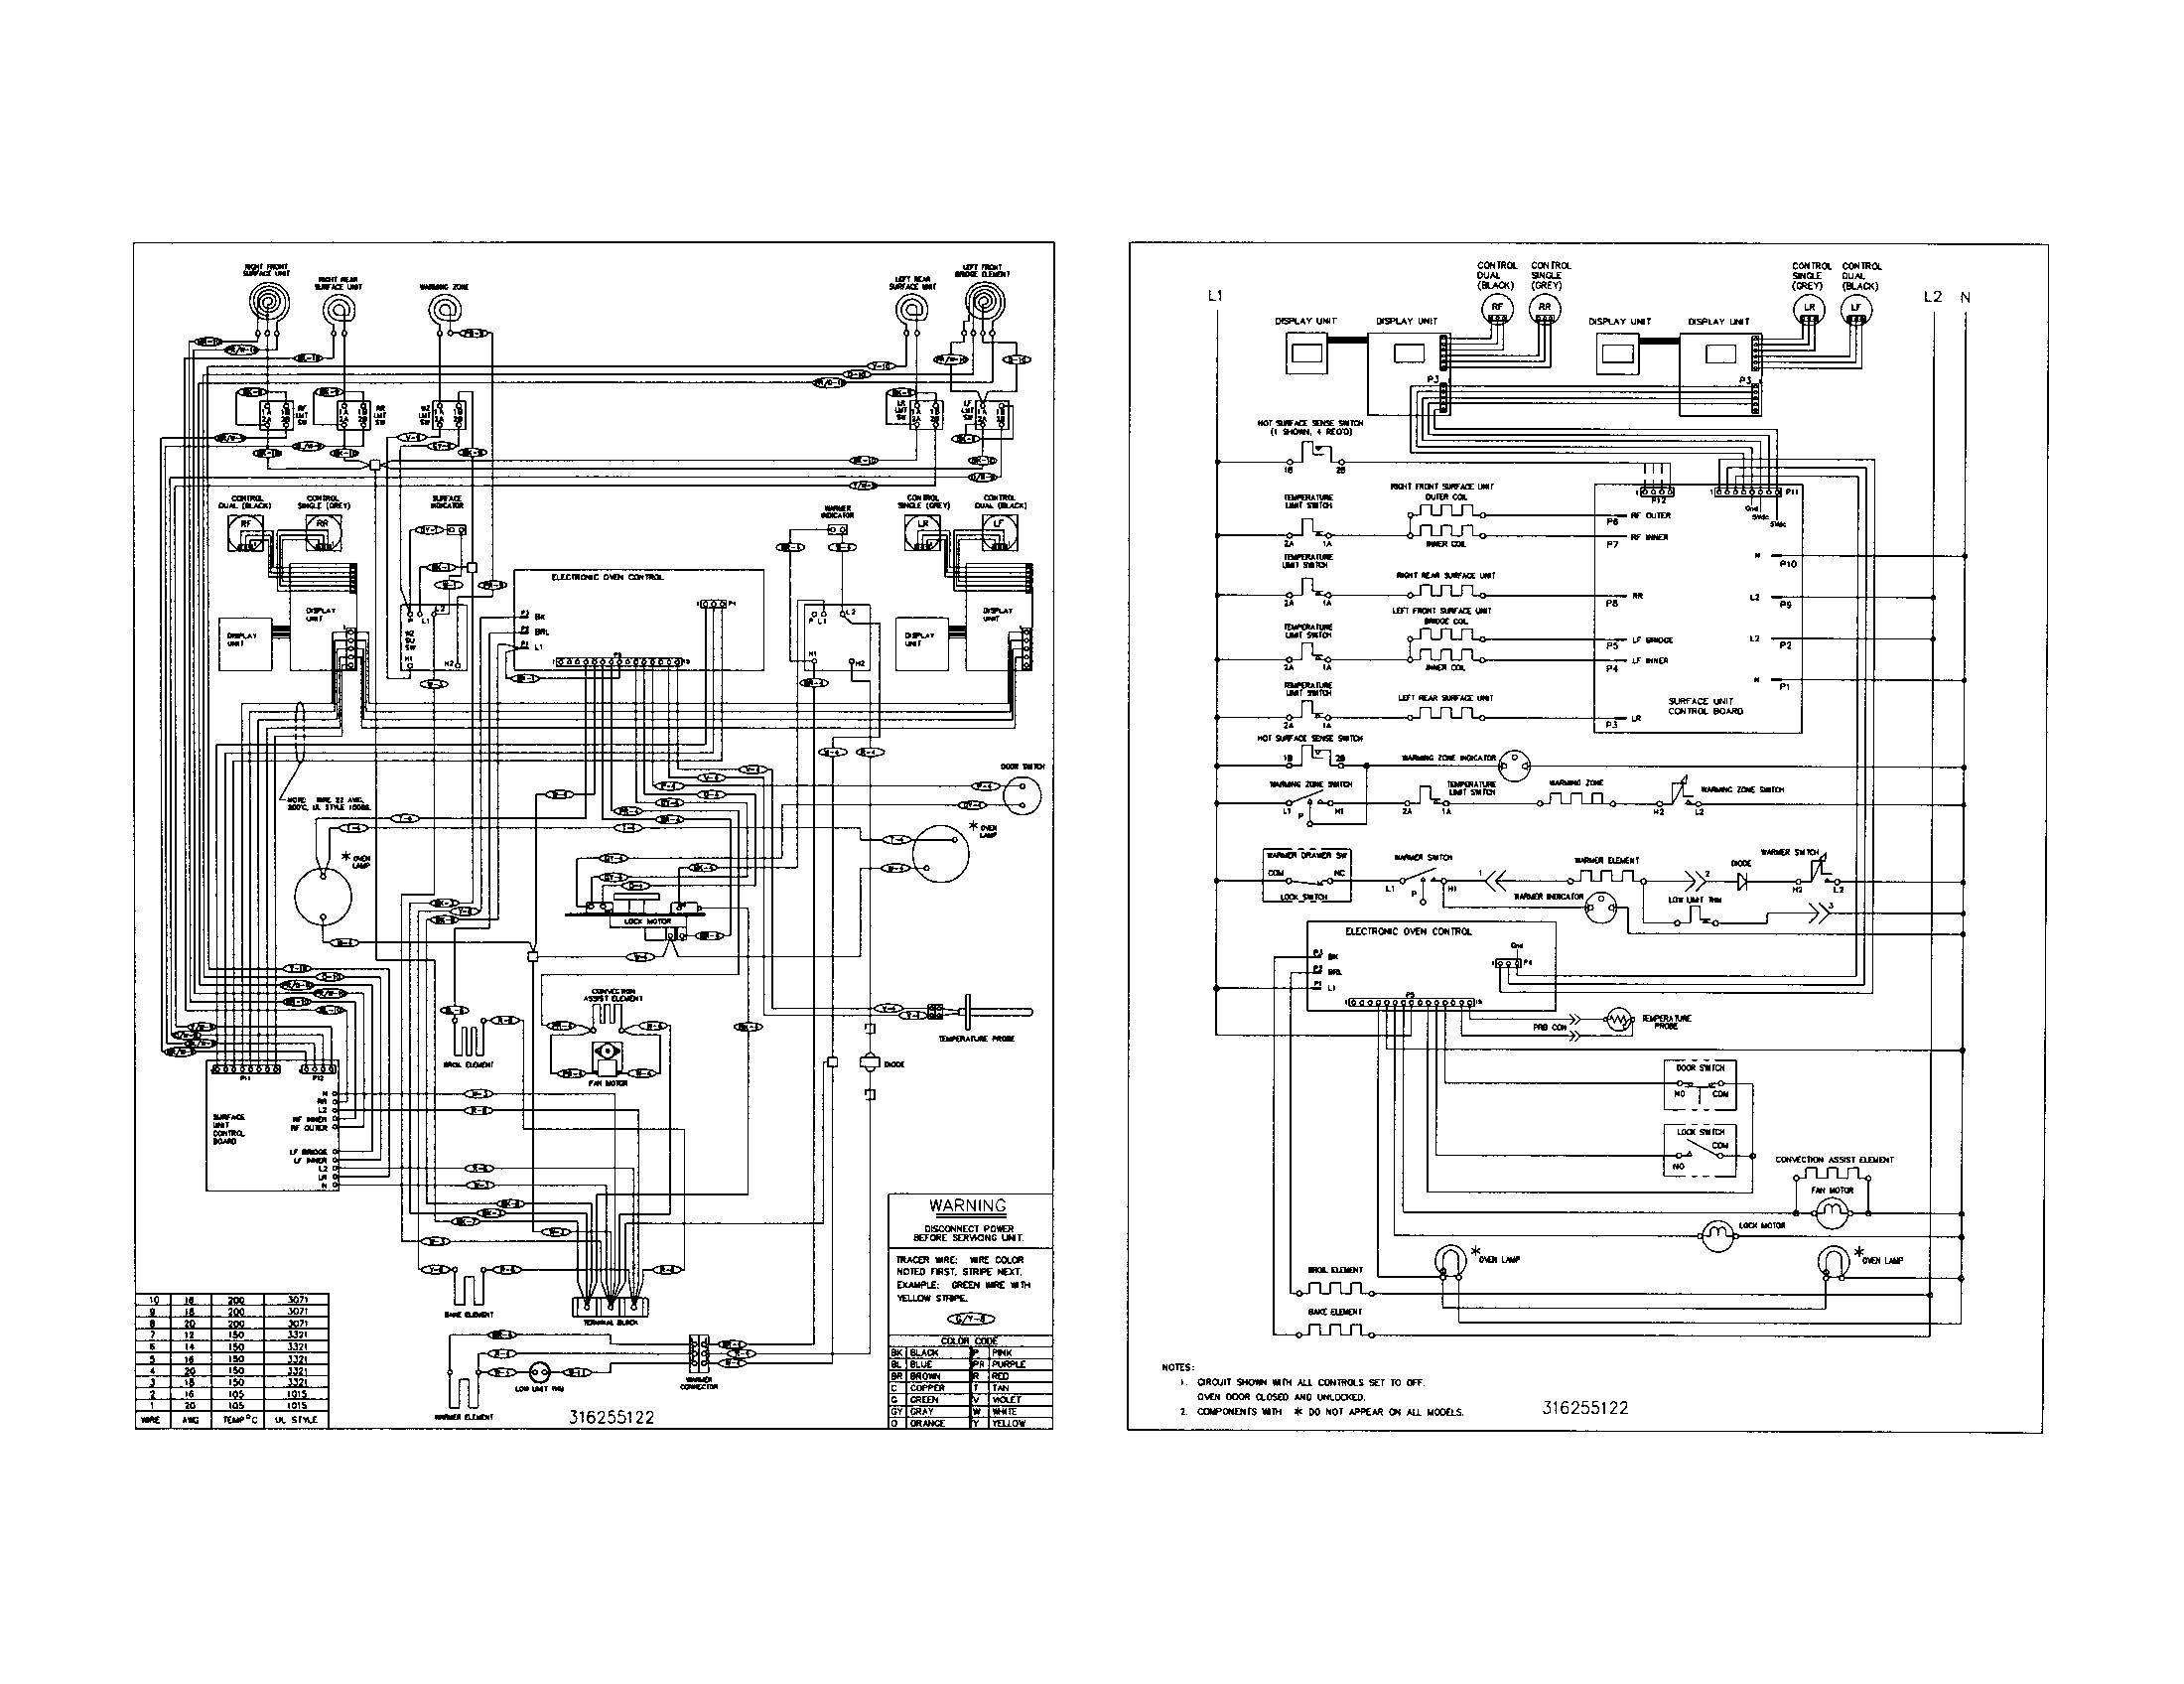 wiring diagram for kenmore dishwasher